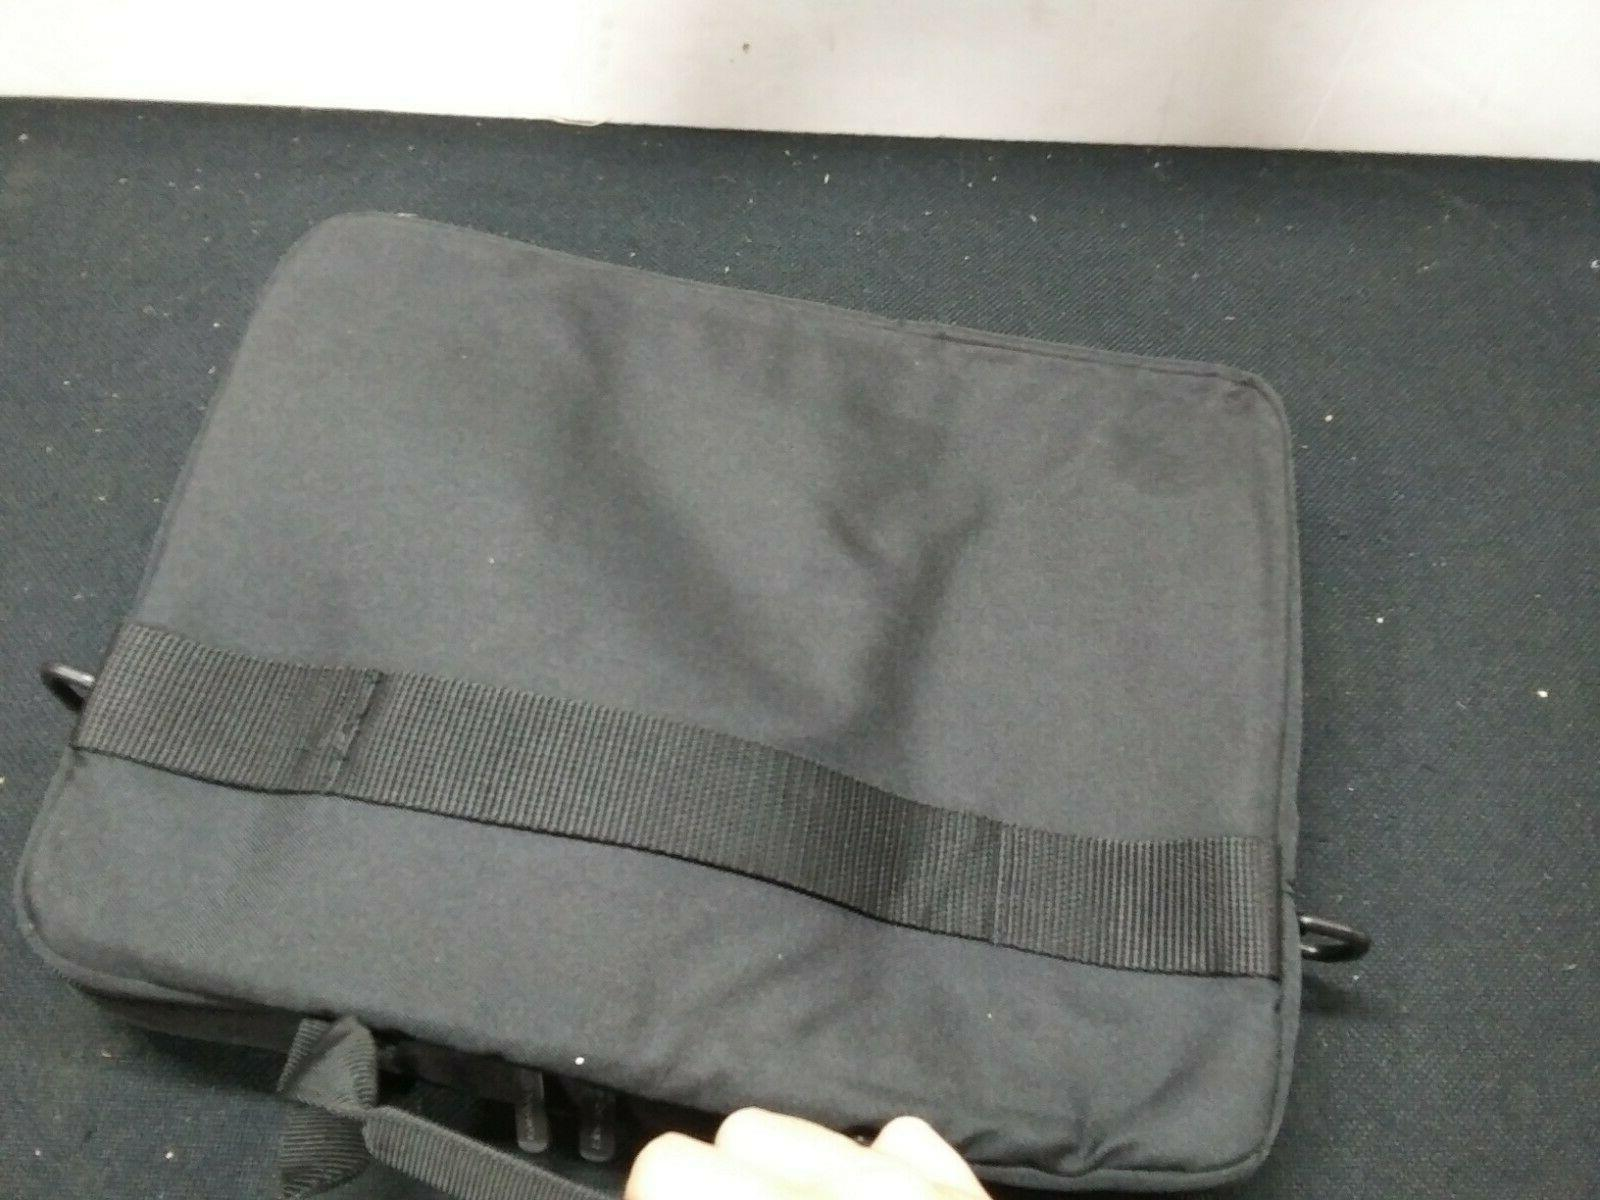 AmazonBasics and Tablet Carrying Case